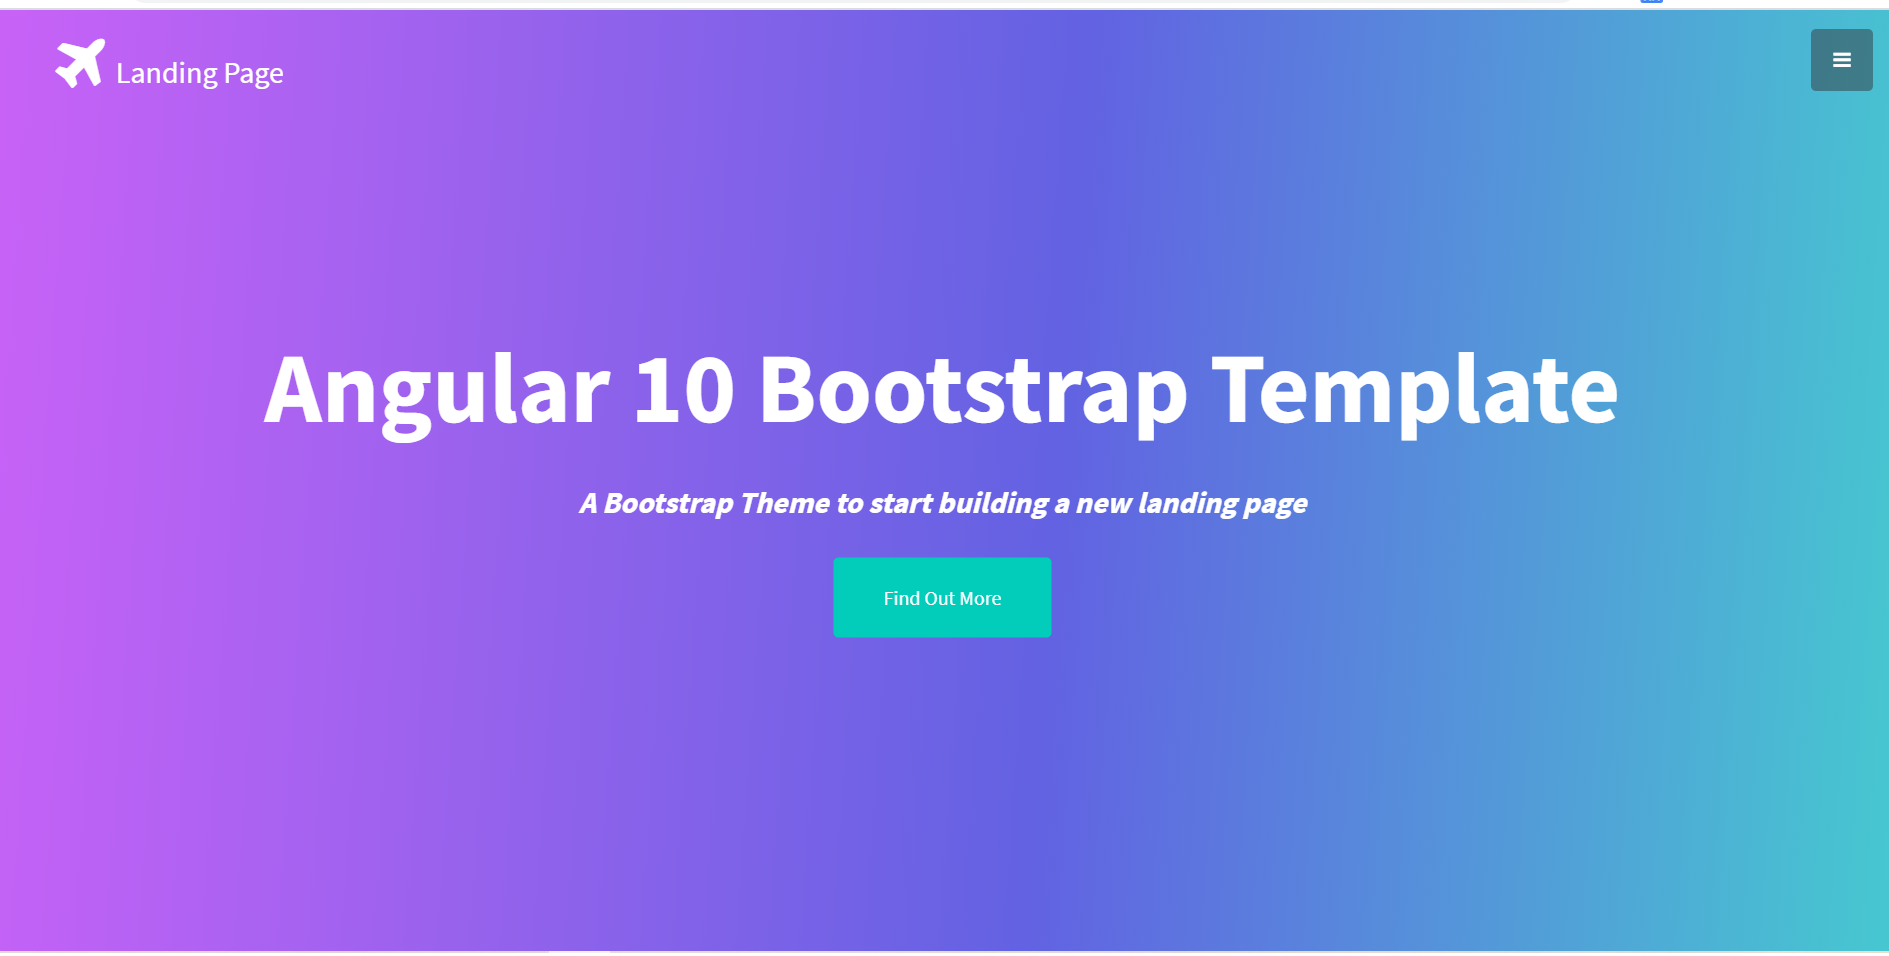 Angular 10 Bootstrap Landing Page Template Free